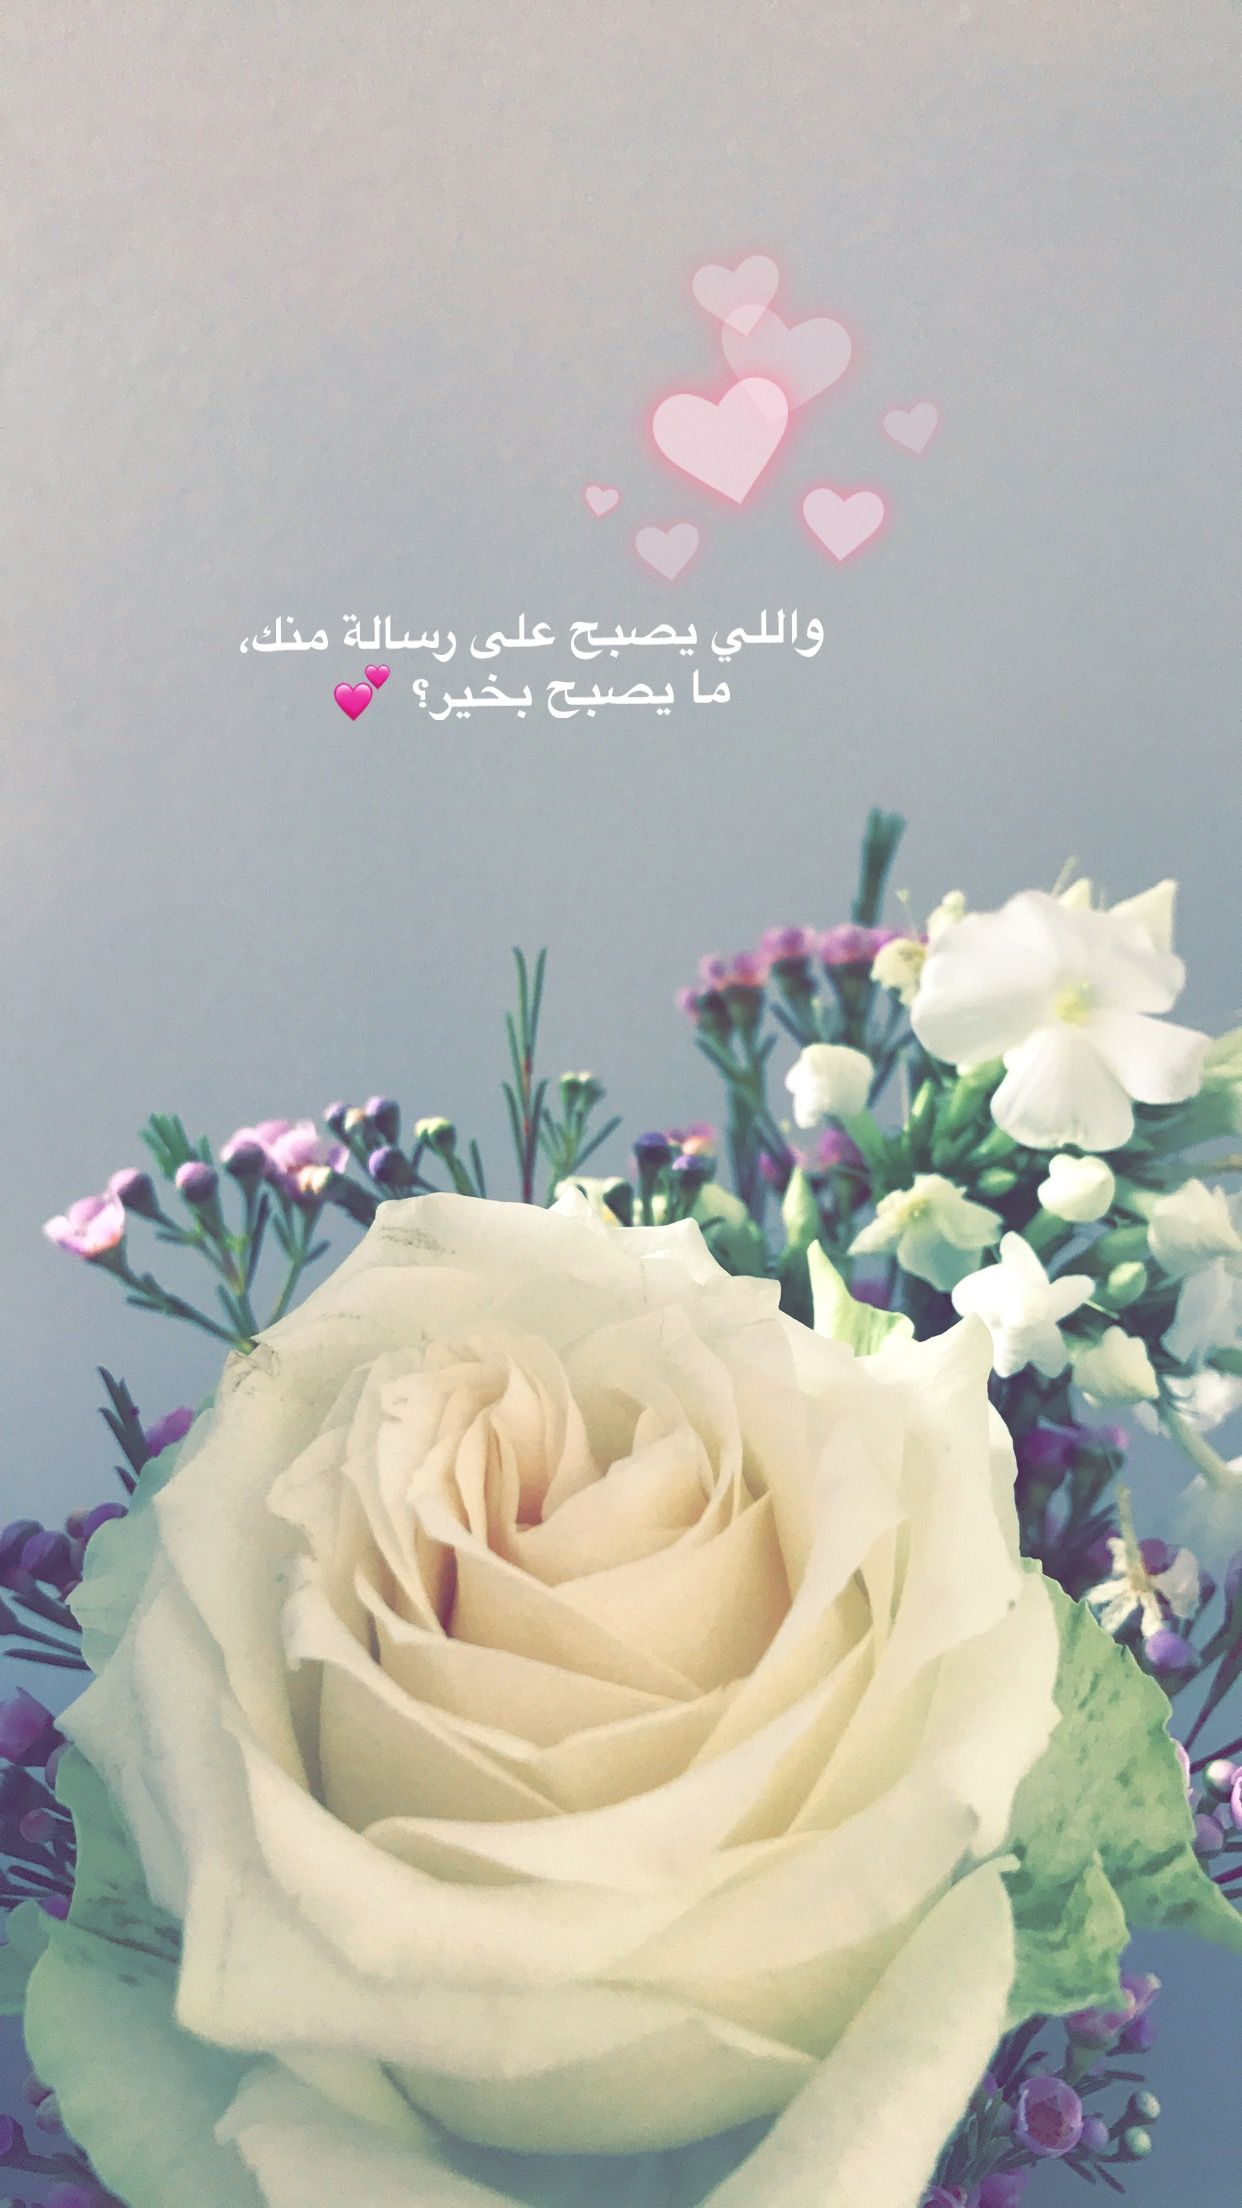 Pin By Janete Alves De Oliveira On All Pictures From My Diary In Snapchat Arabic Funny Flowers All Pictures